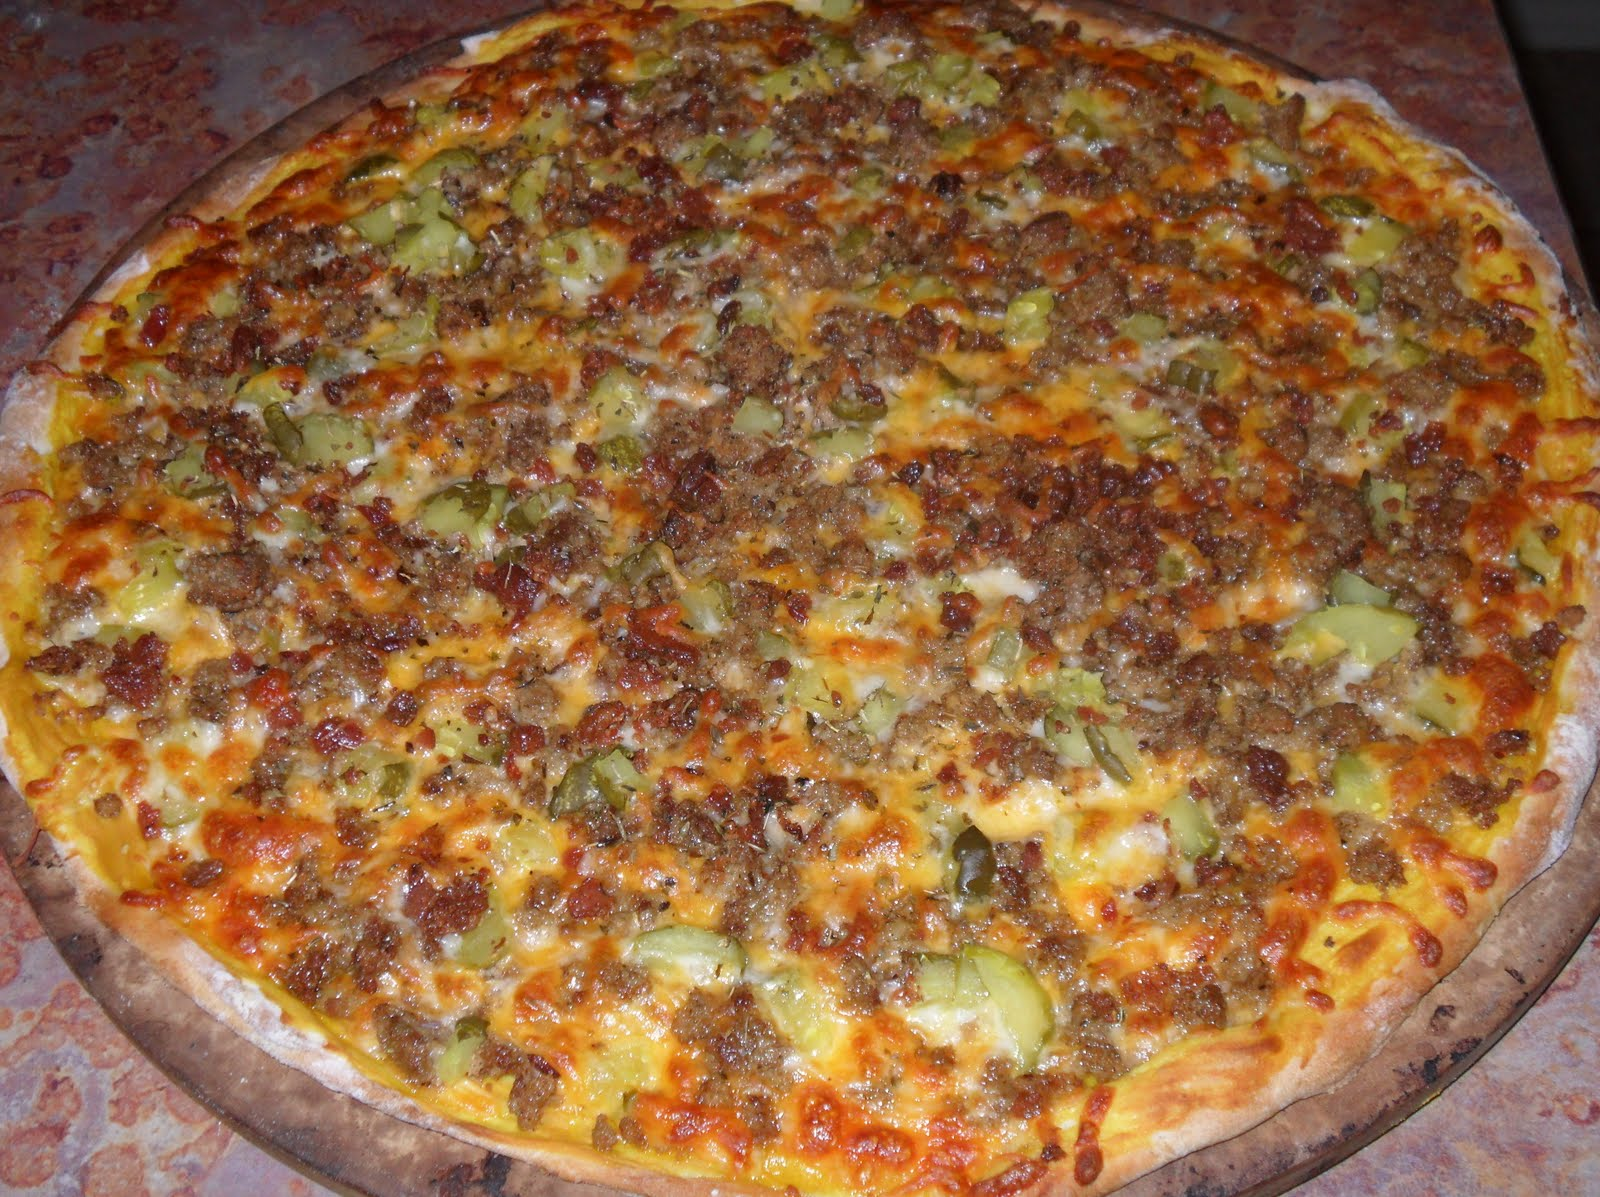 Dancing on the table bacon cheeseburger pizza